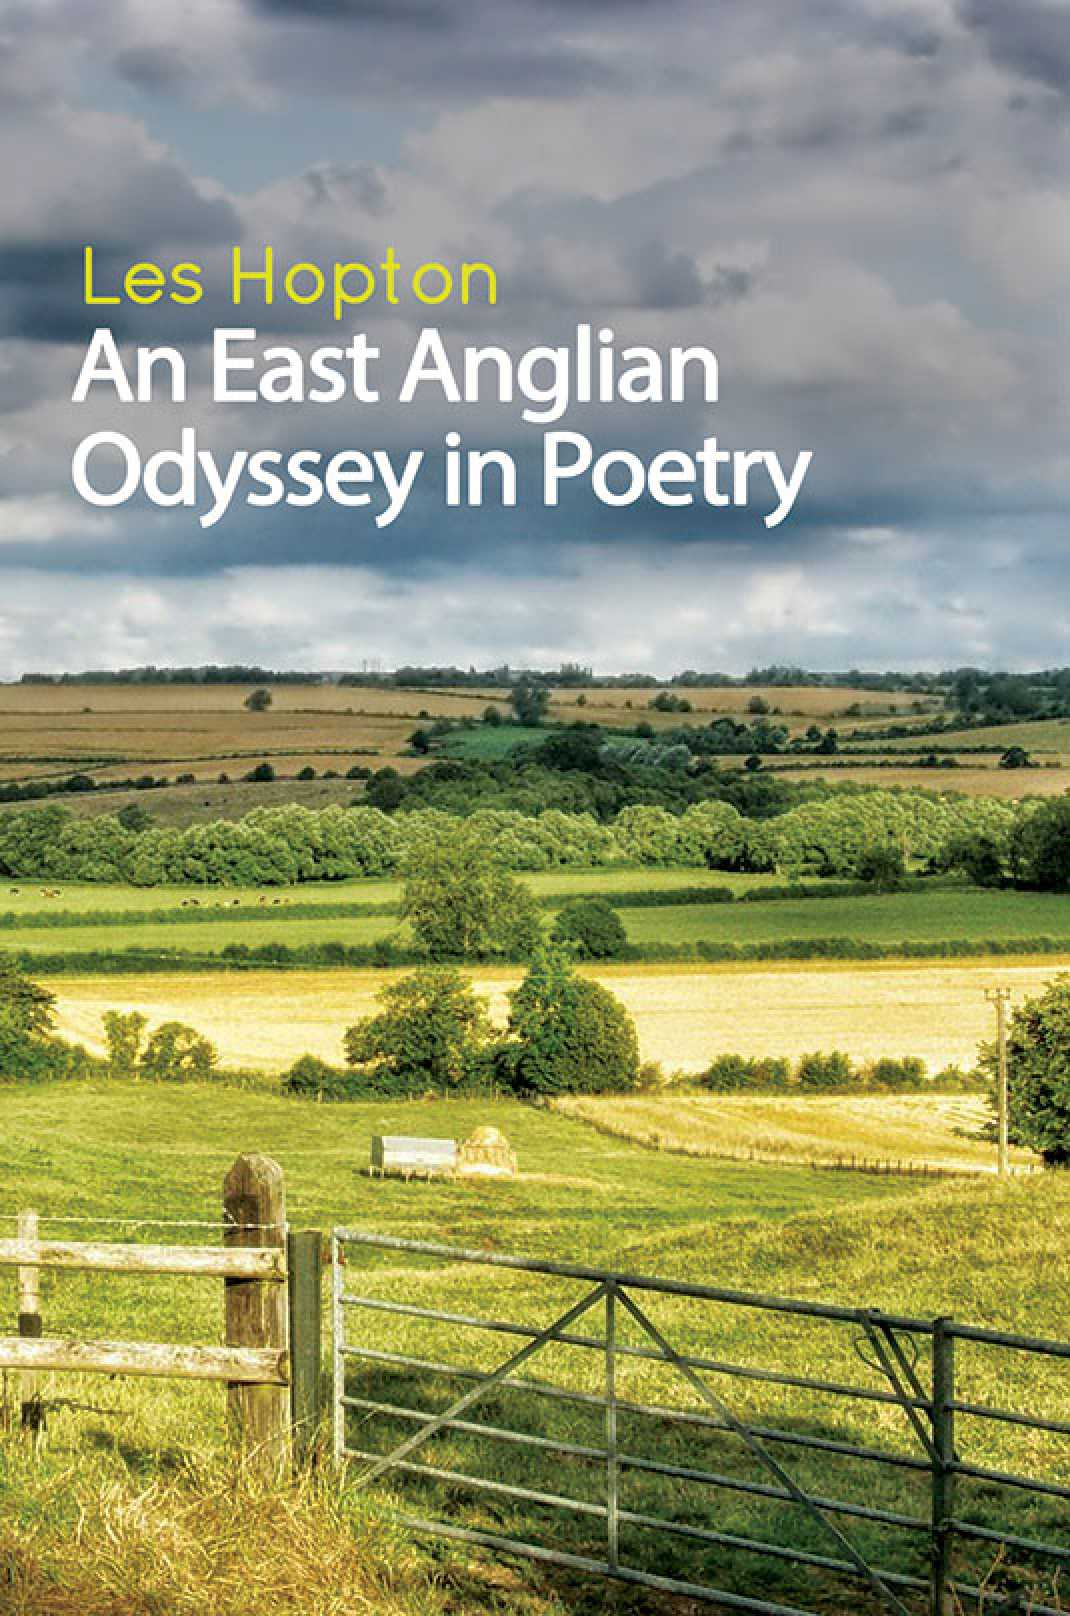 An East Anglian Odyssey in Poetry